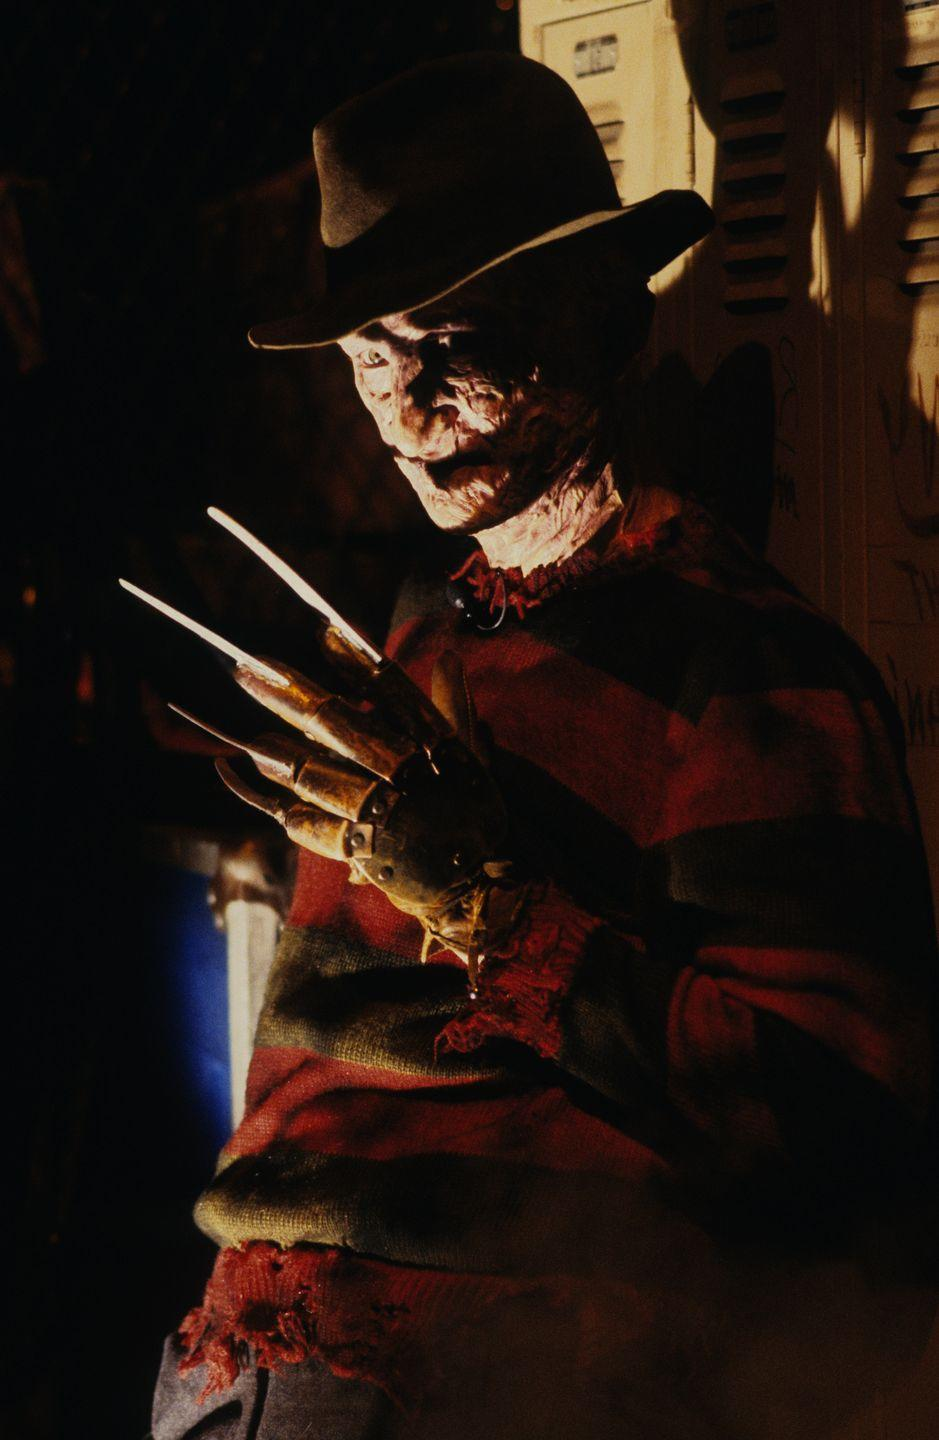 <p><strong><em>Nightmare on Elm Street</em></strong></p><p>Want to be tormented in your dreams by a gruesome serial killer? Head to fictional Springwood, O.H., where Freddy Kruger has been haunting nightmares in countless films. </p>